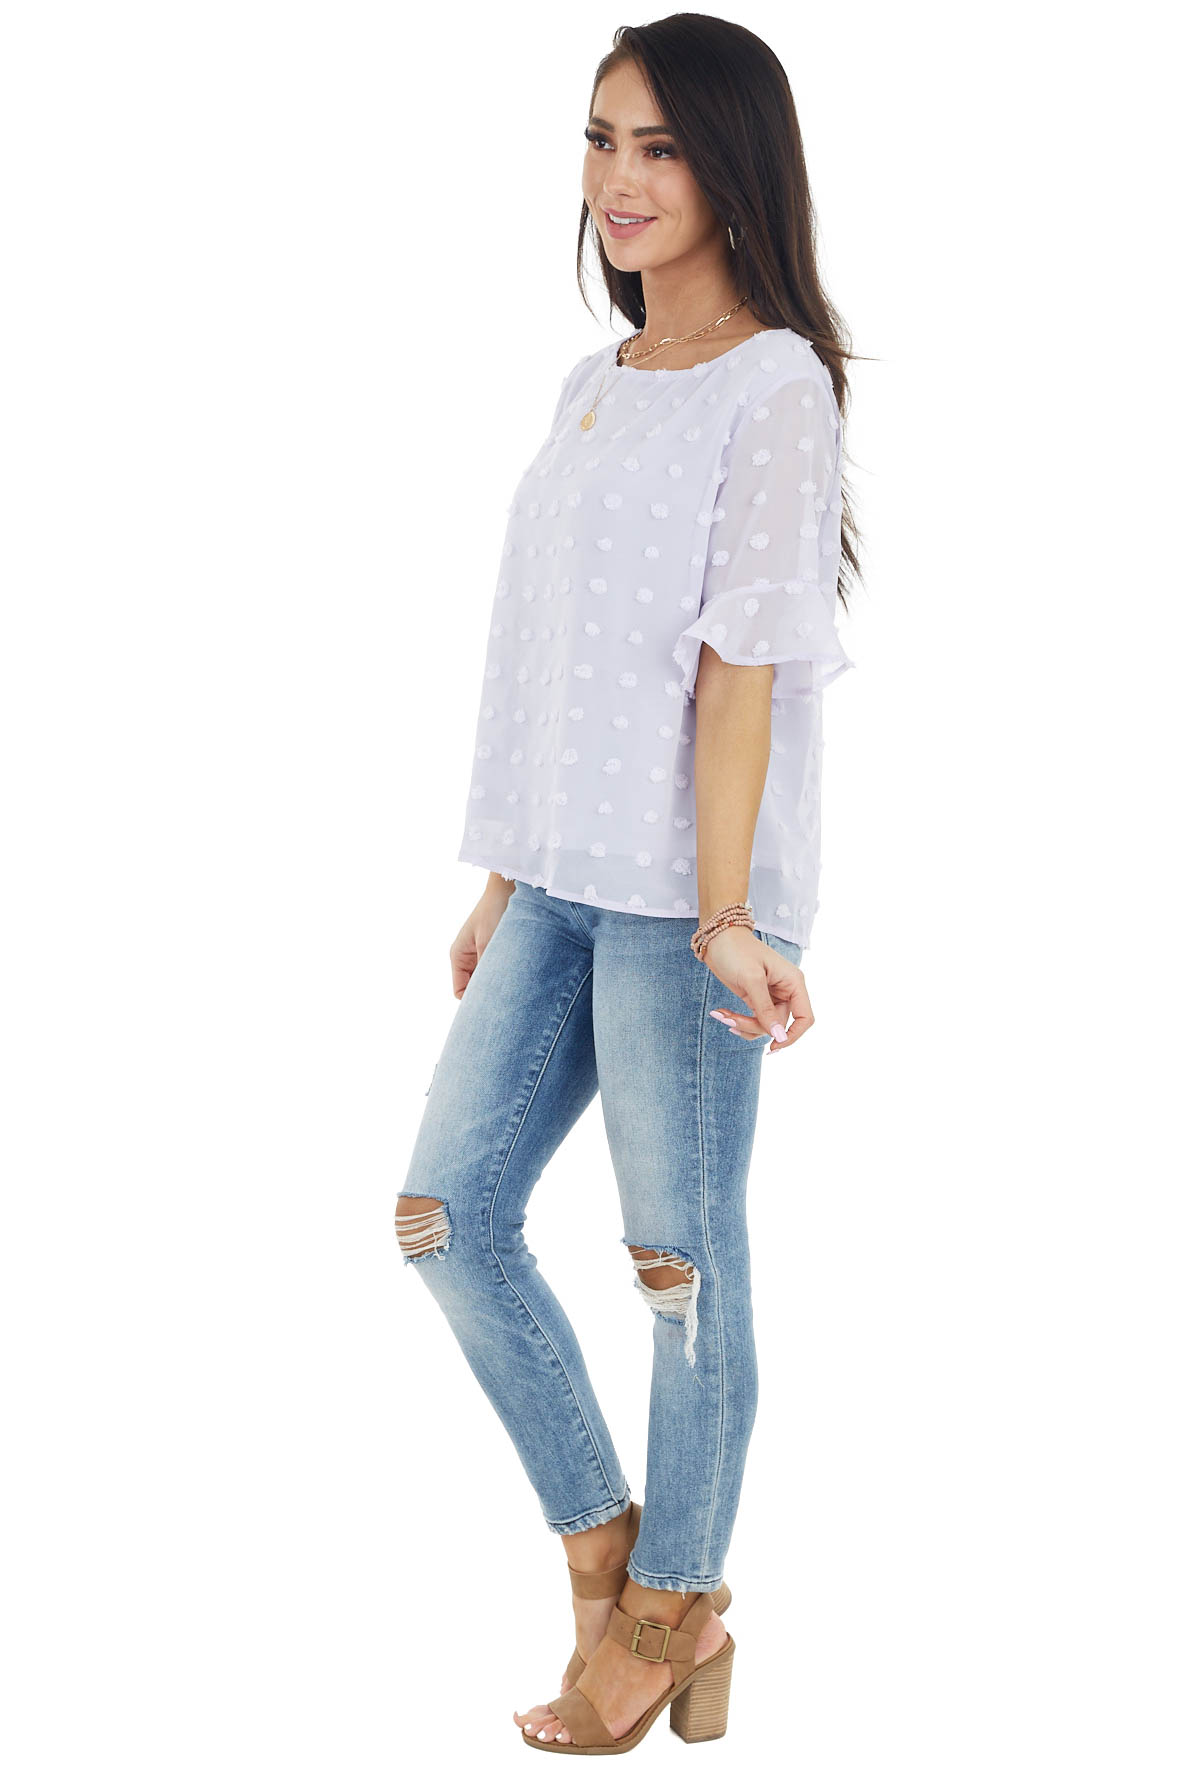 Pale Lavender Swiss Dot Blouse with Short Ruffle Sleeves